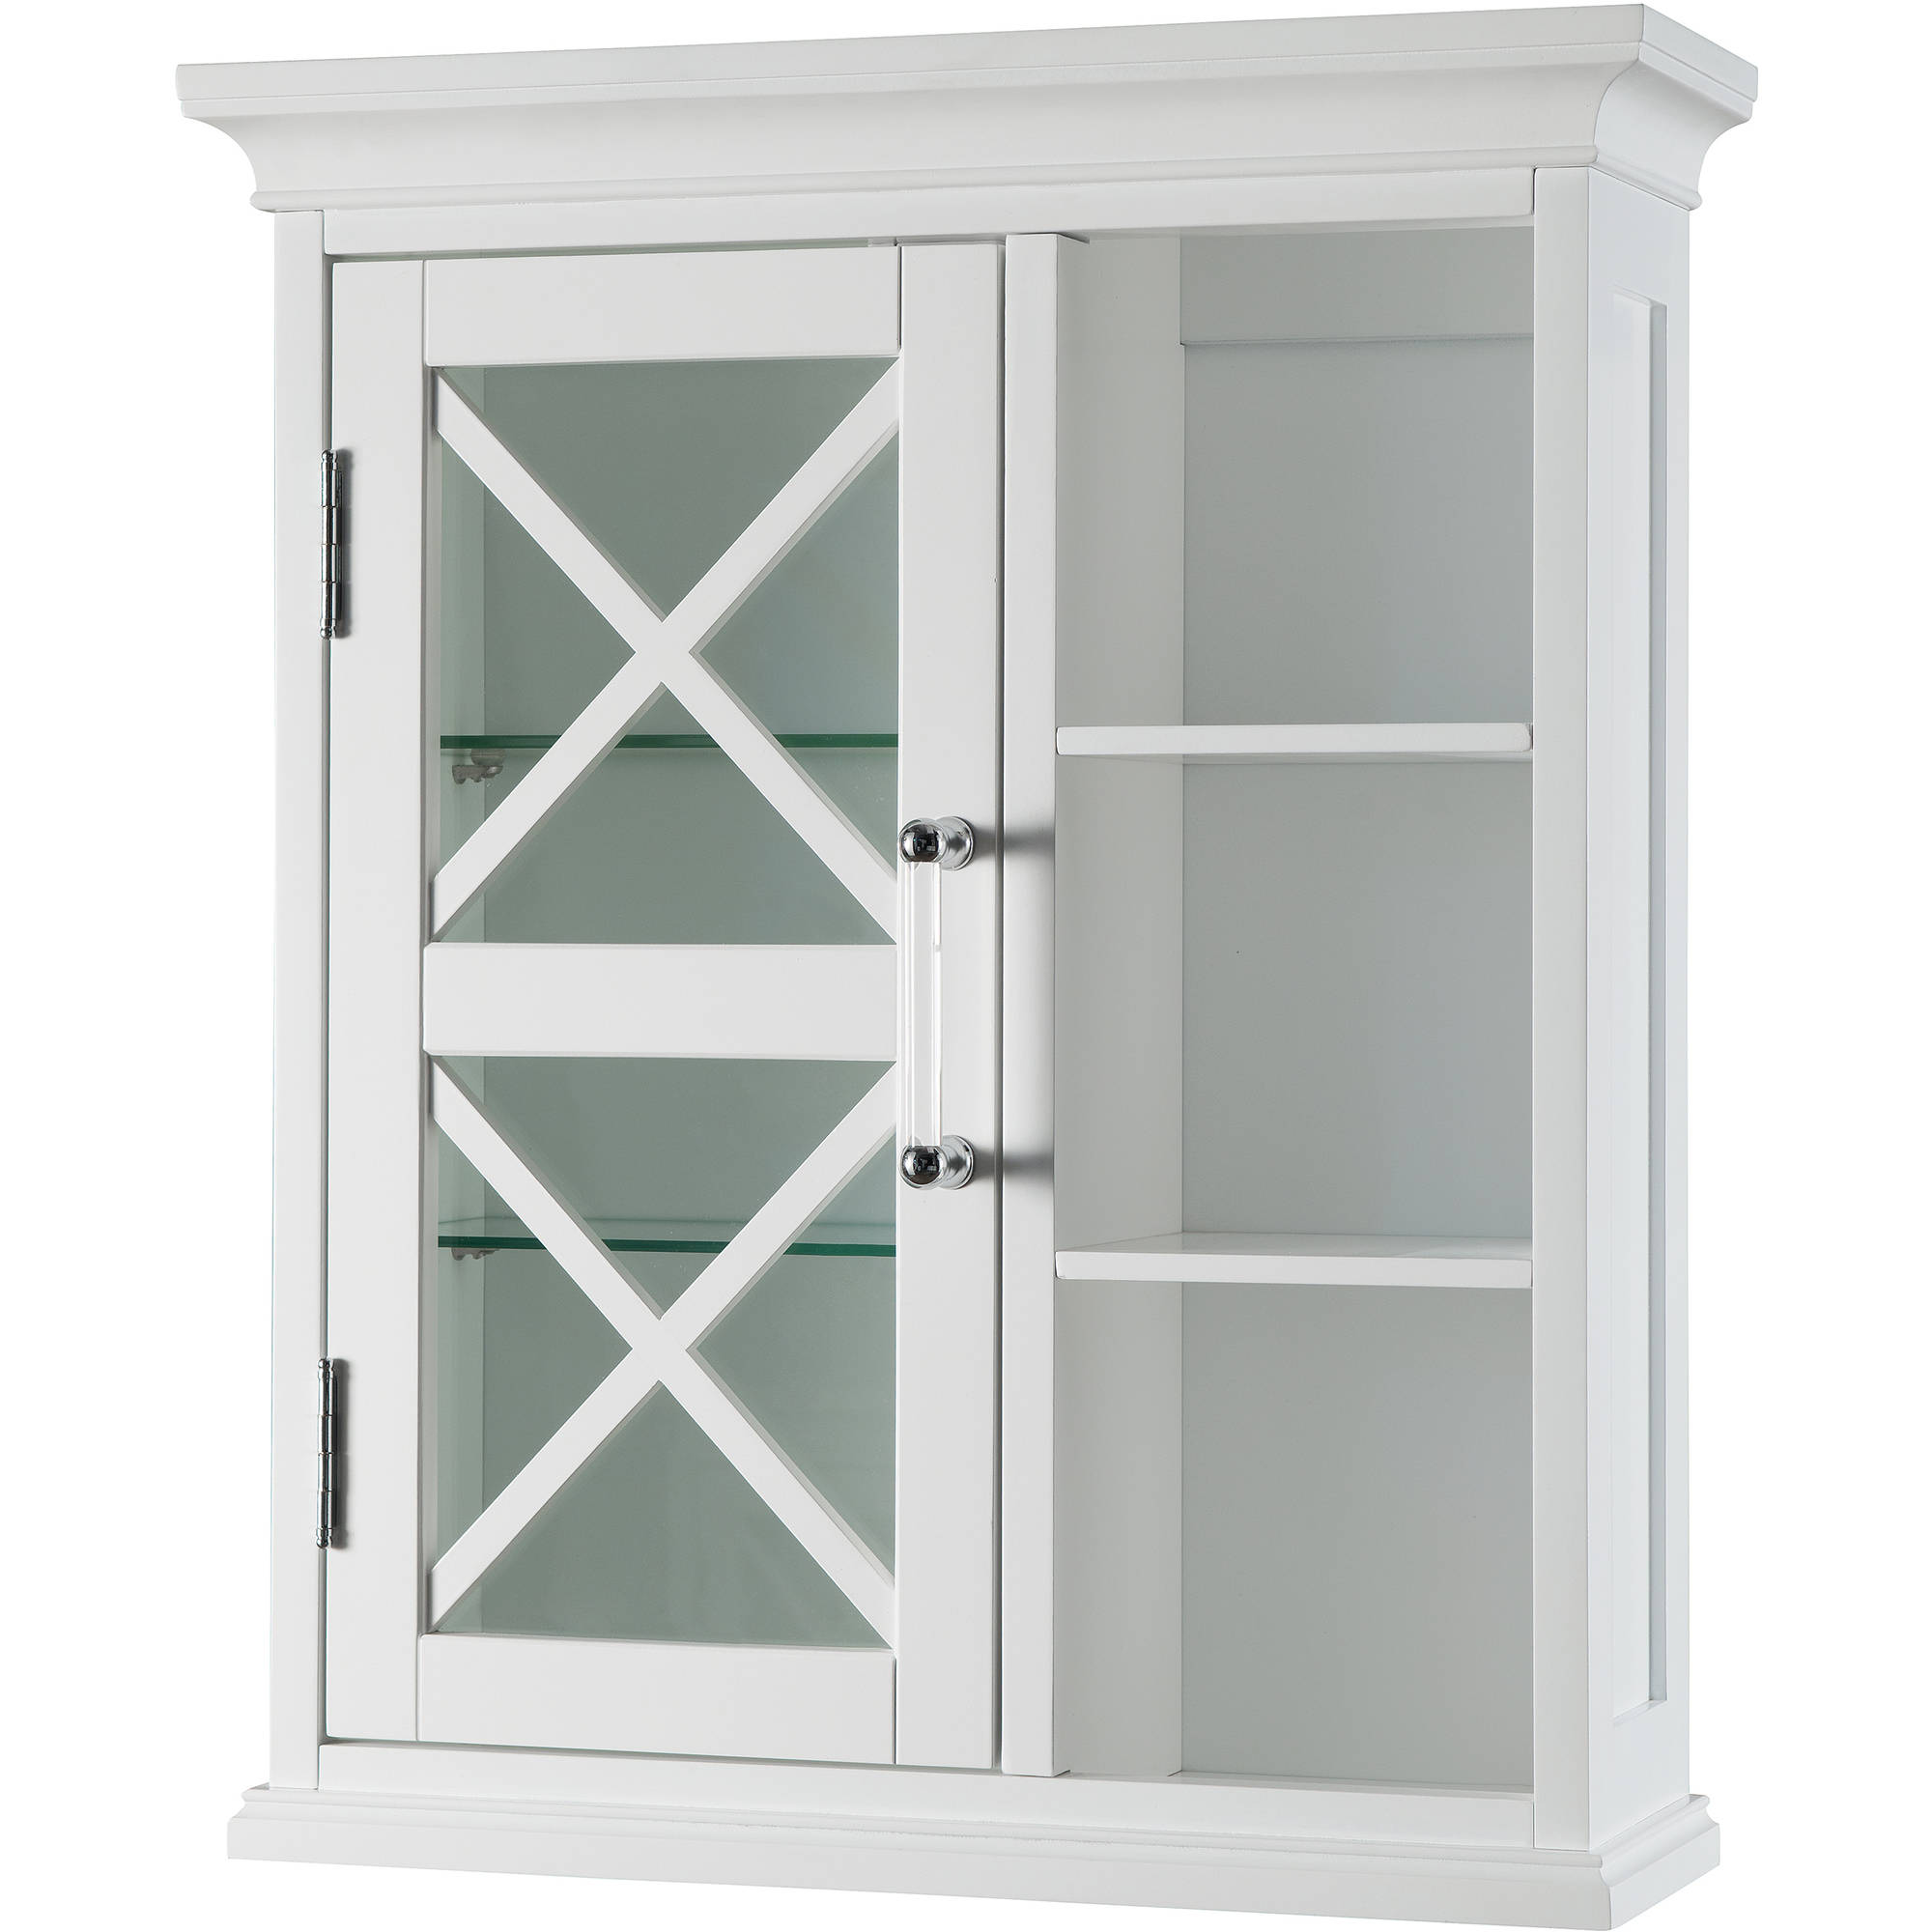 Mason Wall Cabinet with 1 Door and Cubbies